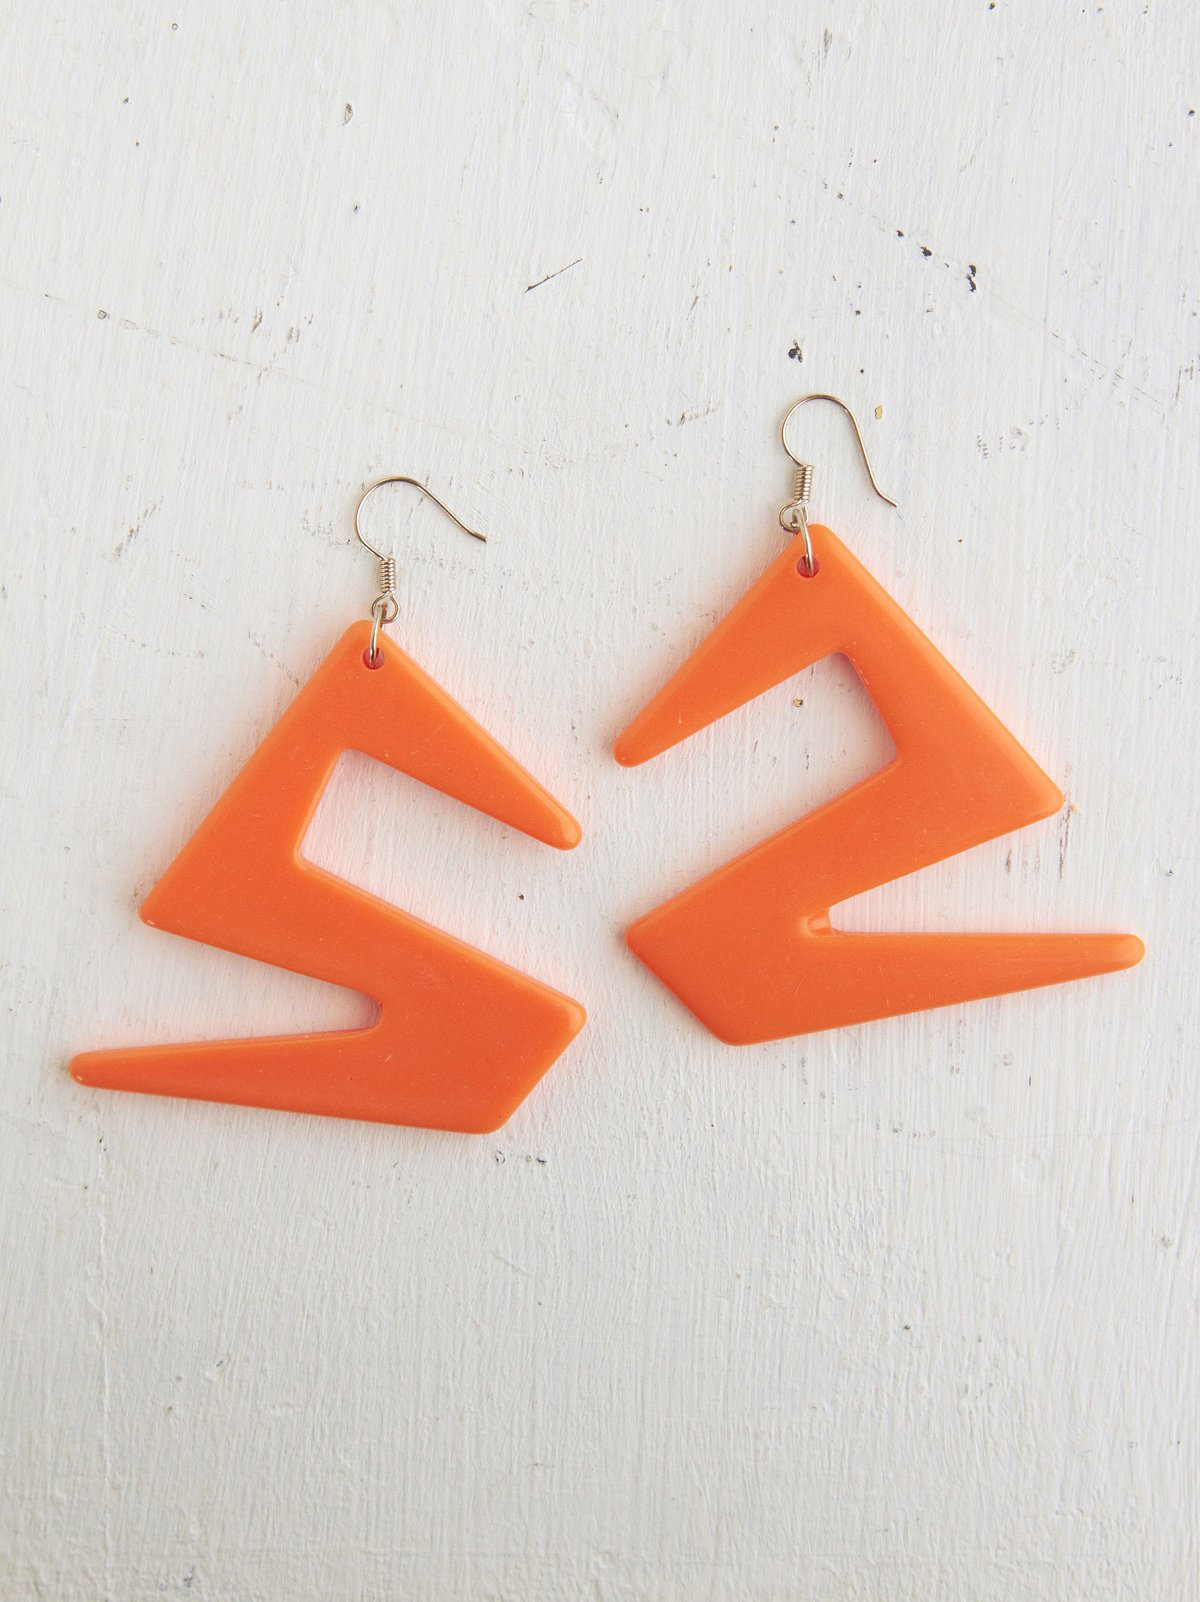 Vintage Orange Geometric Shaped Earrings